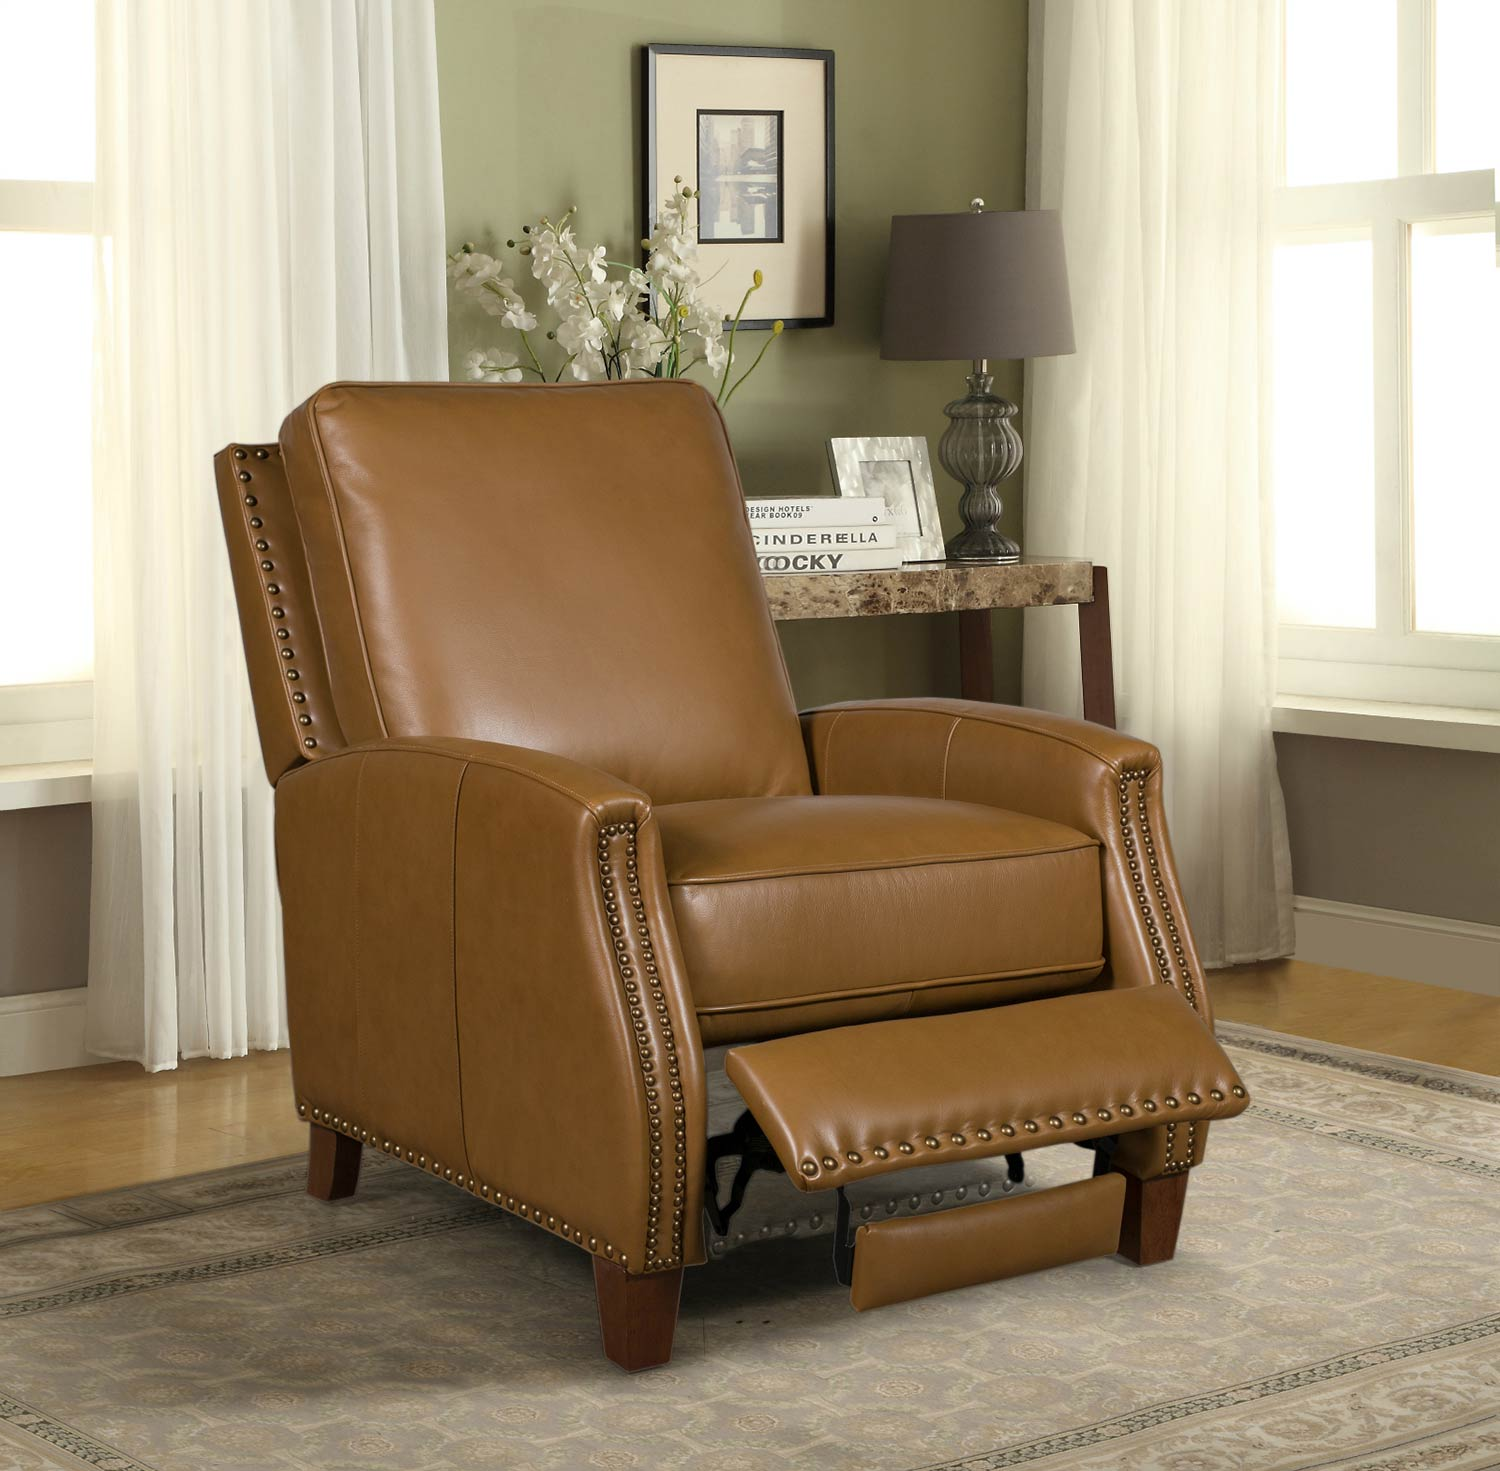 Barcalounger Melrose Recliner Chair - Shoreham Ponytail/All Leather